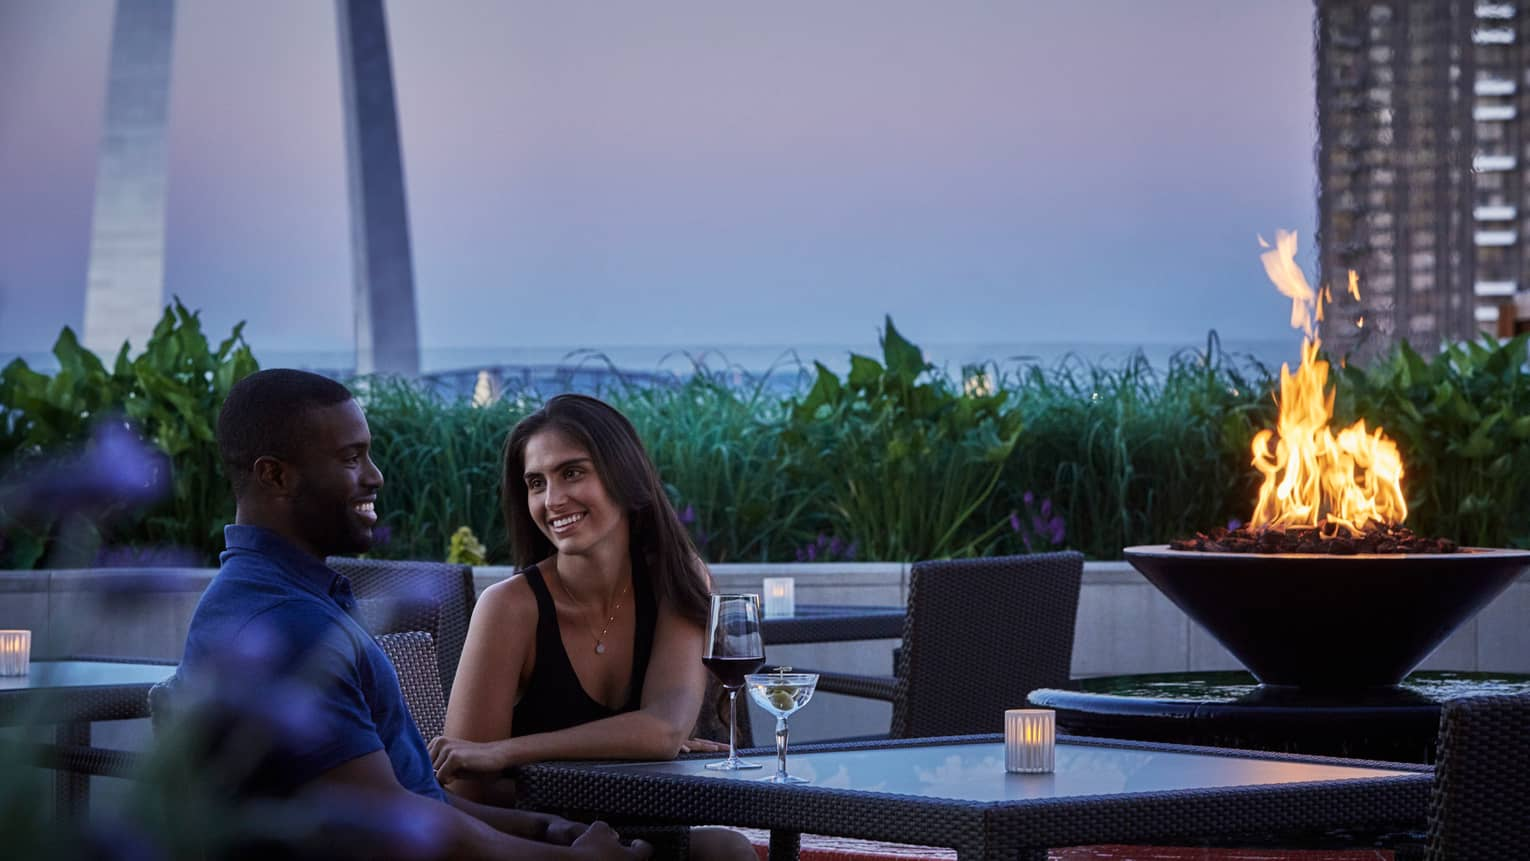 Smiling man and woman with martini and wine sit at rooftop patio table at dusk, near outdoor fireplace